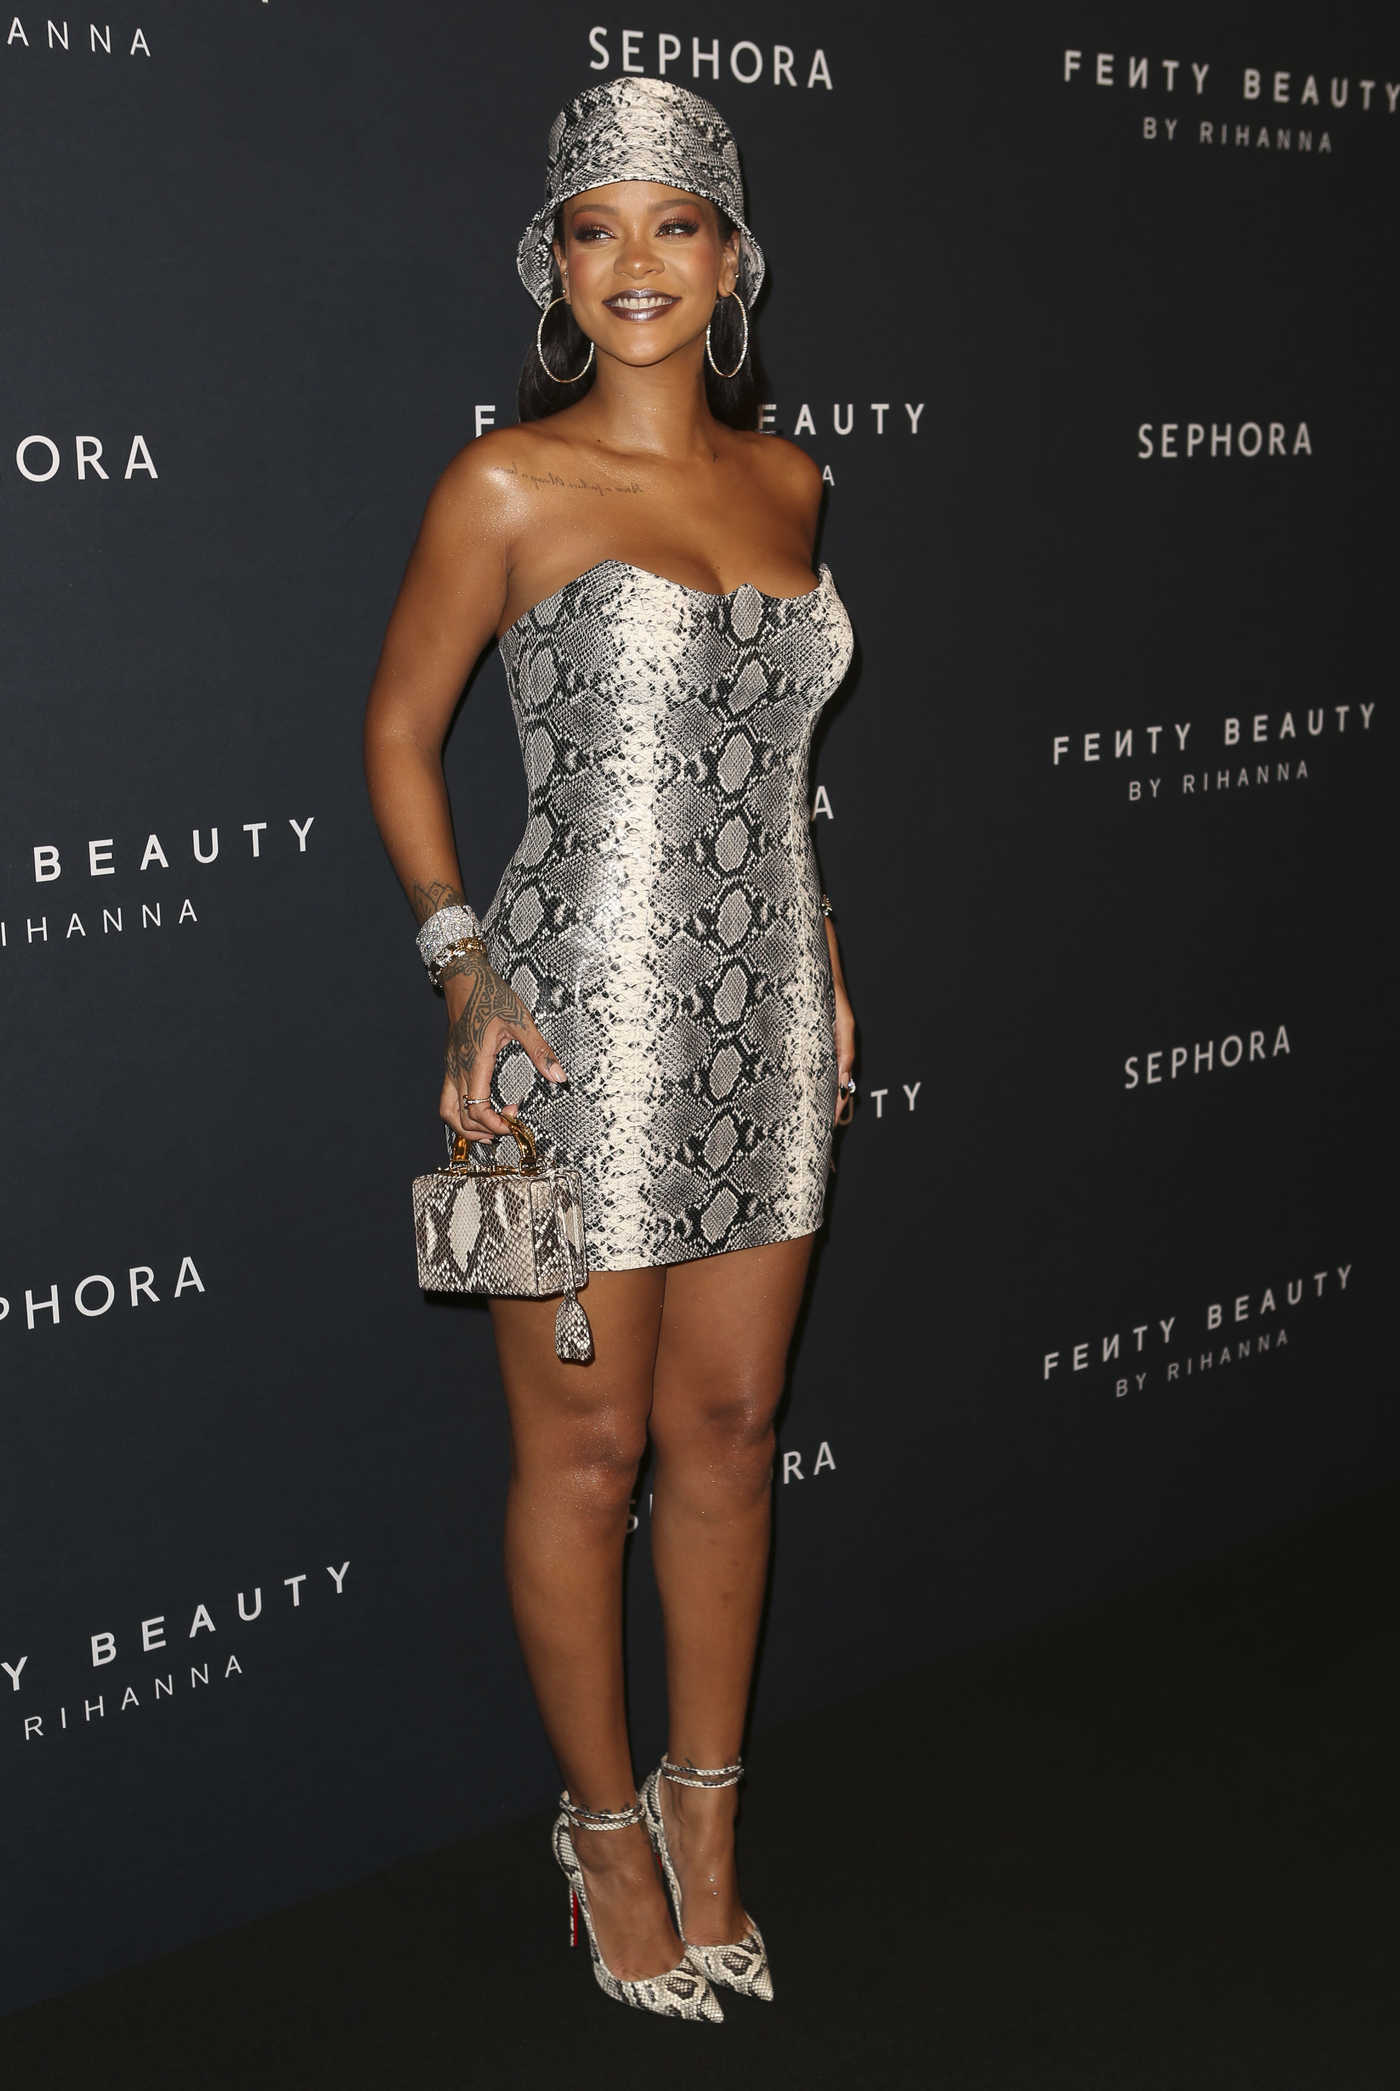 Rihanna Attends the Fenty Beauty by Rihanna Anniversary Event at Overseas Passenger Terminal in Sydney 10/03/2018